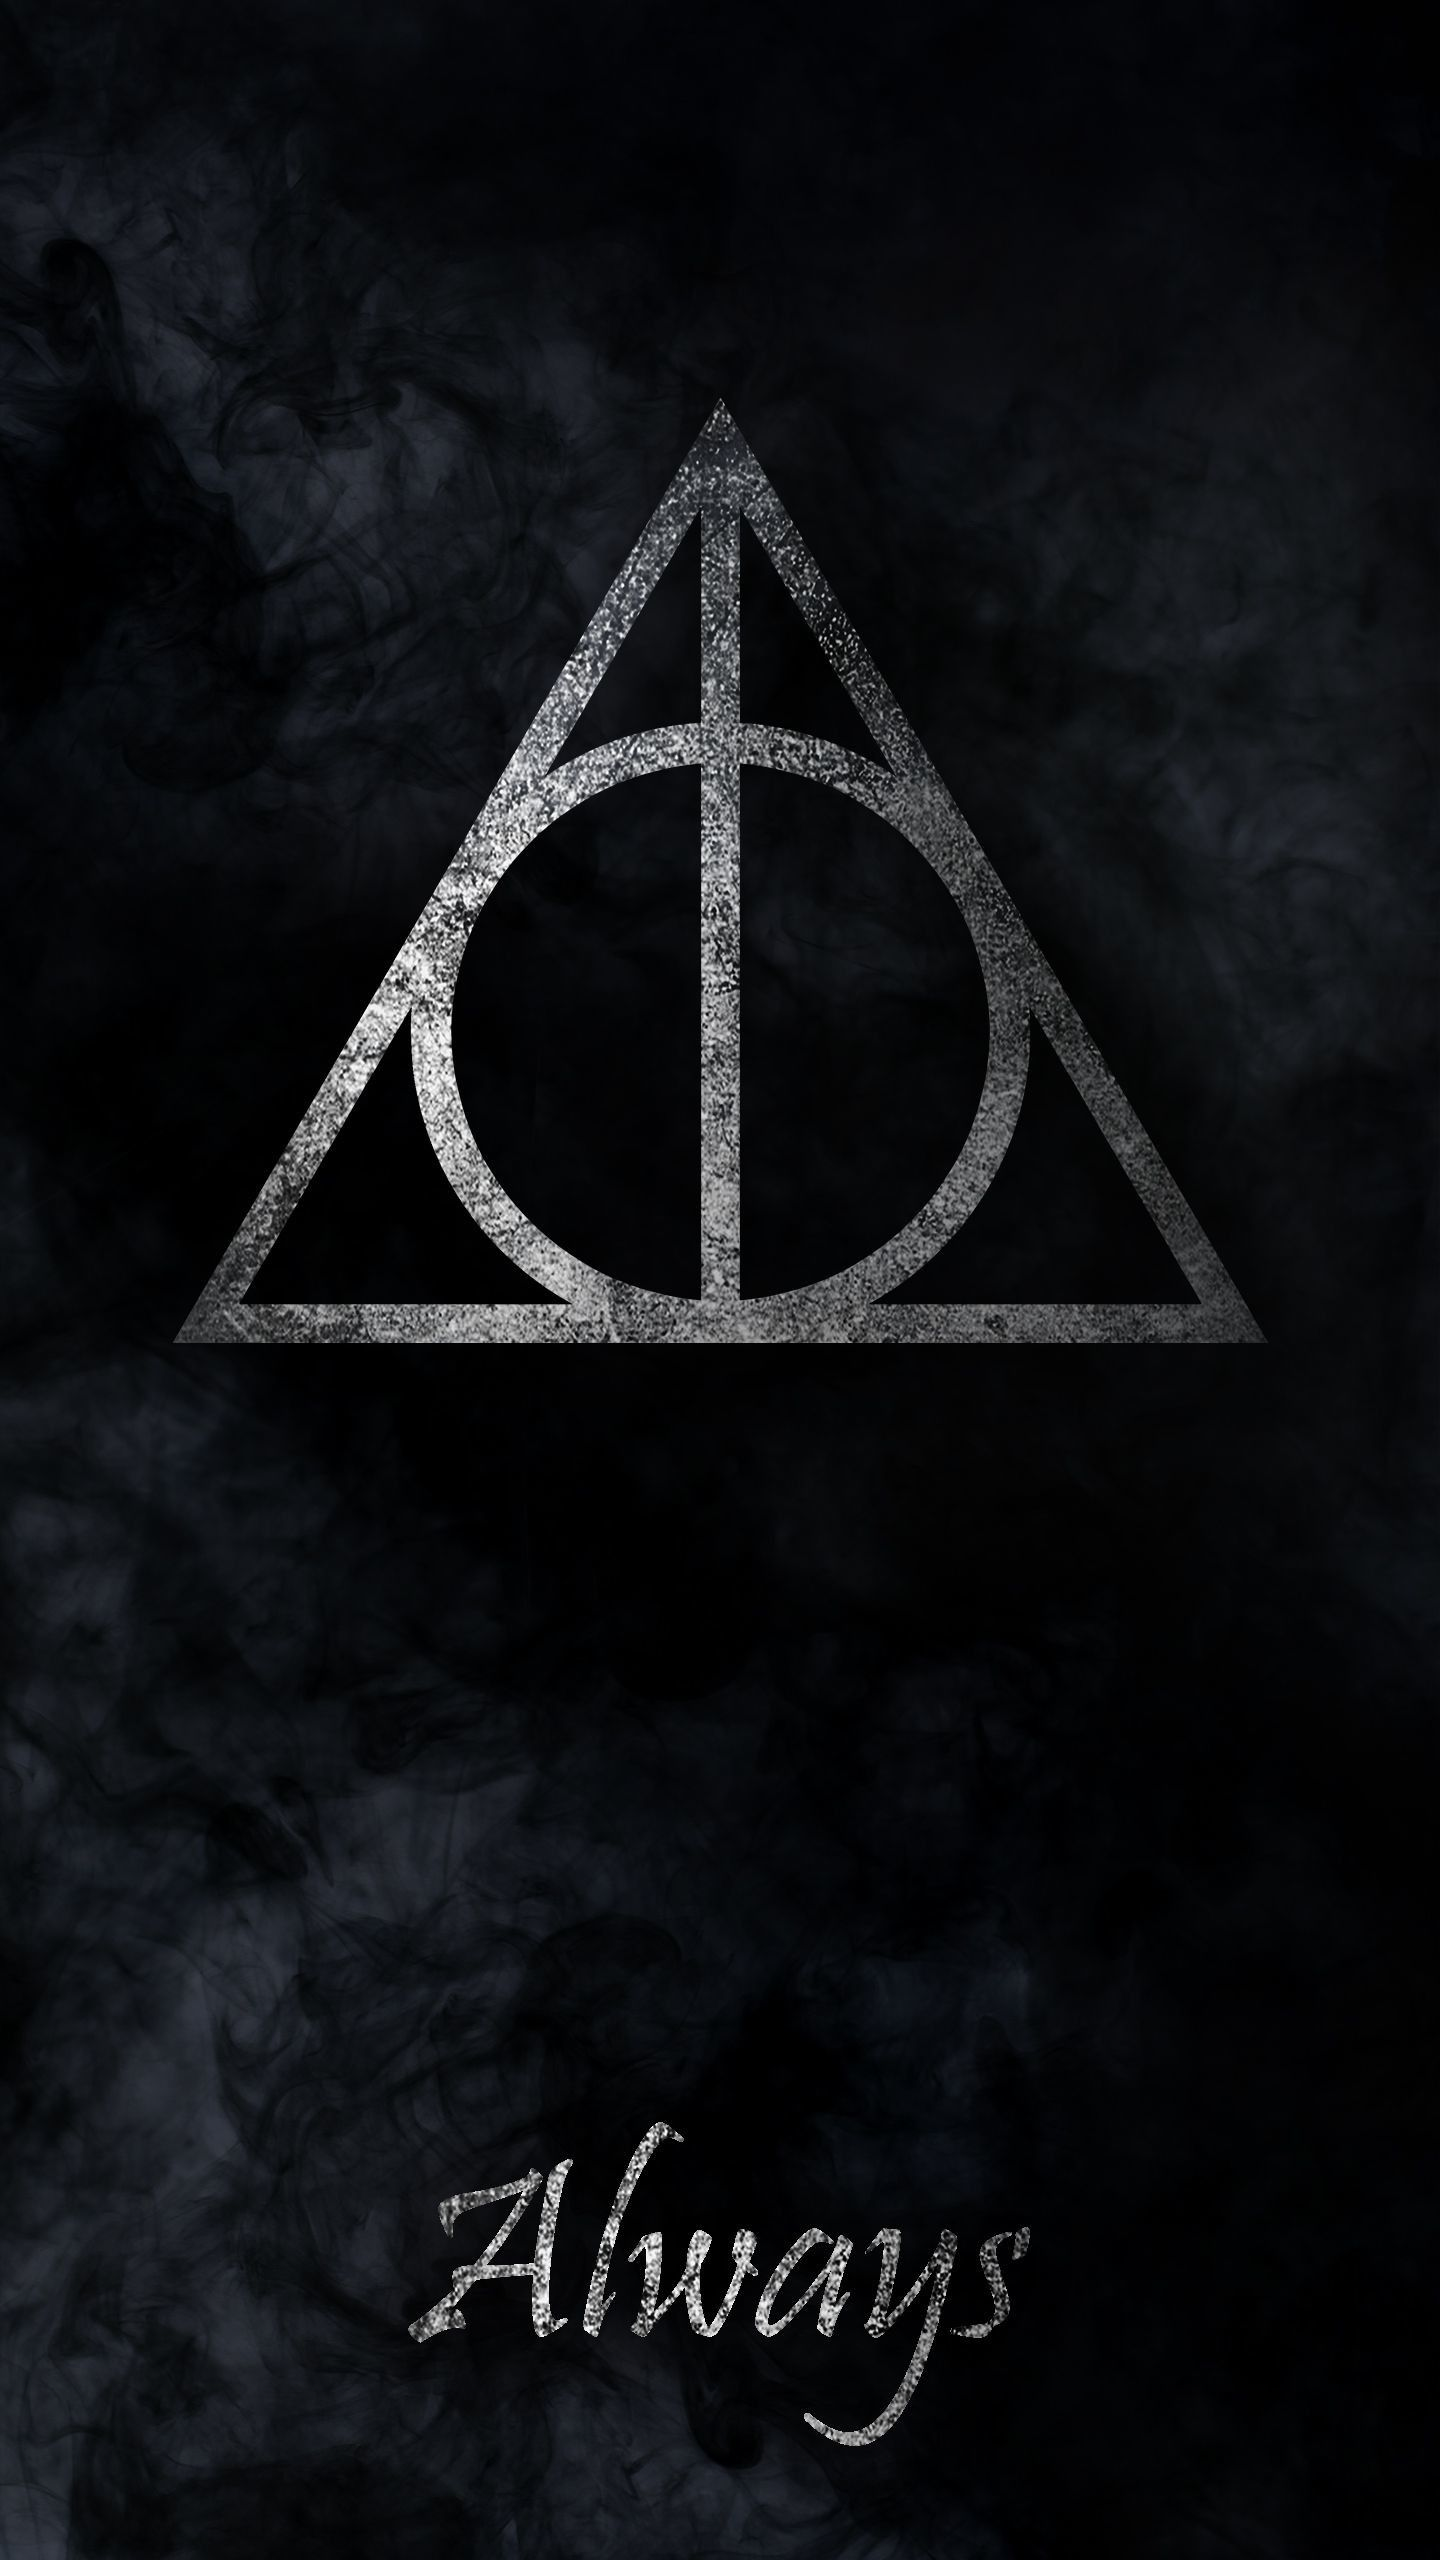 Harry Potter Iphone Wallpaper Quotes Ipcwallpapers In 2020 Harry Potter Background Harry Potter Wallpaper Harry Potter Wallpaper Phone